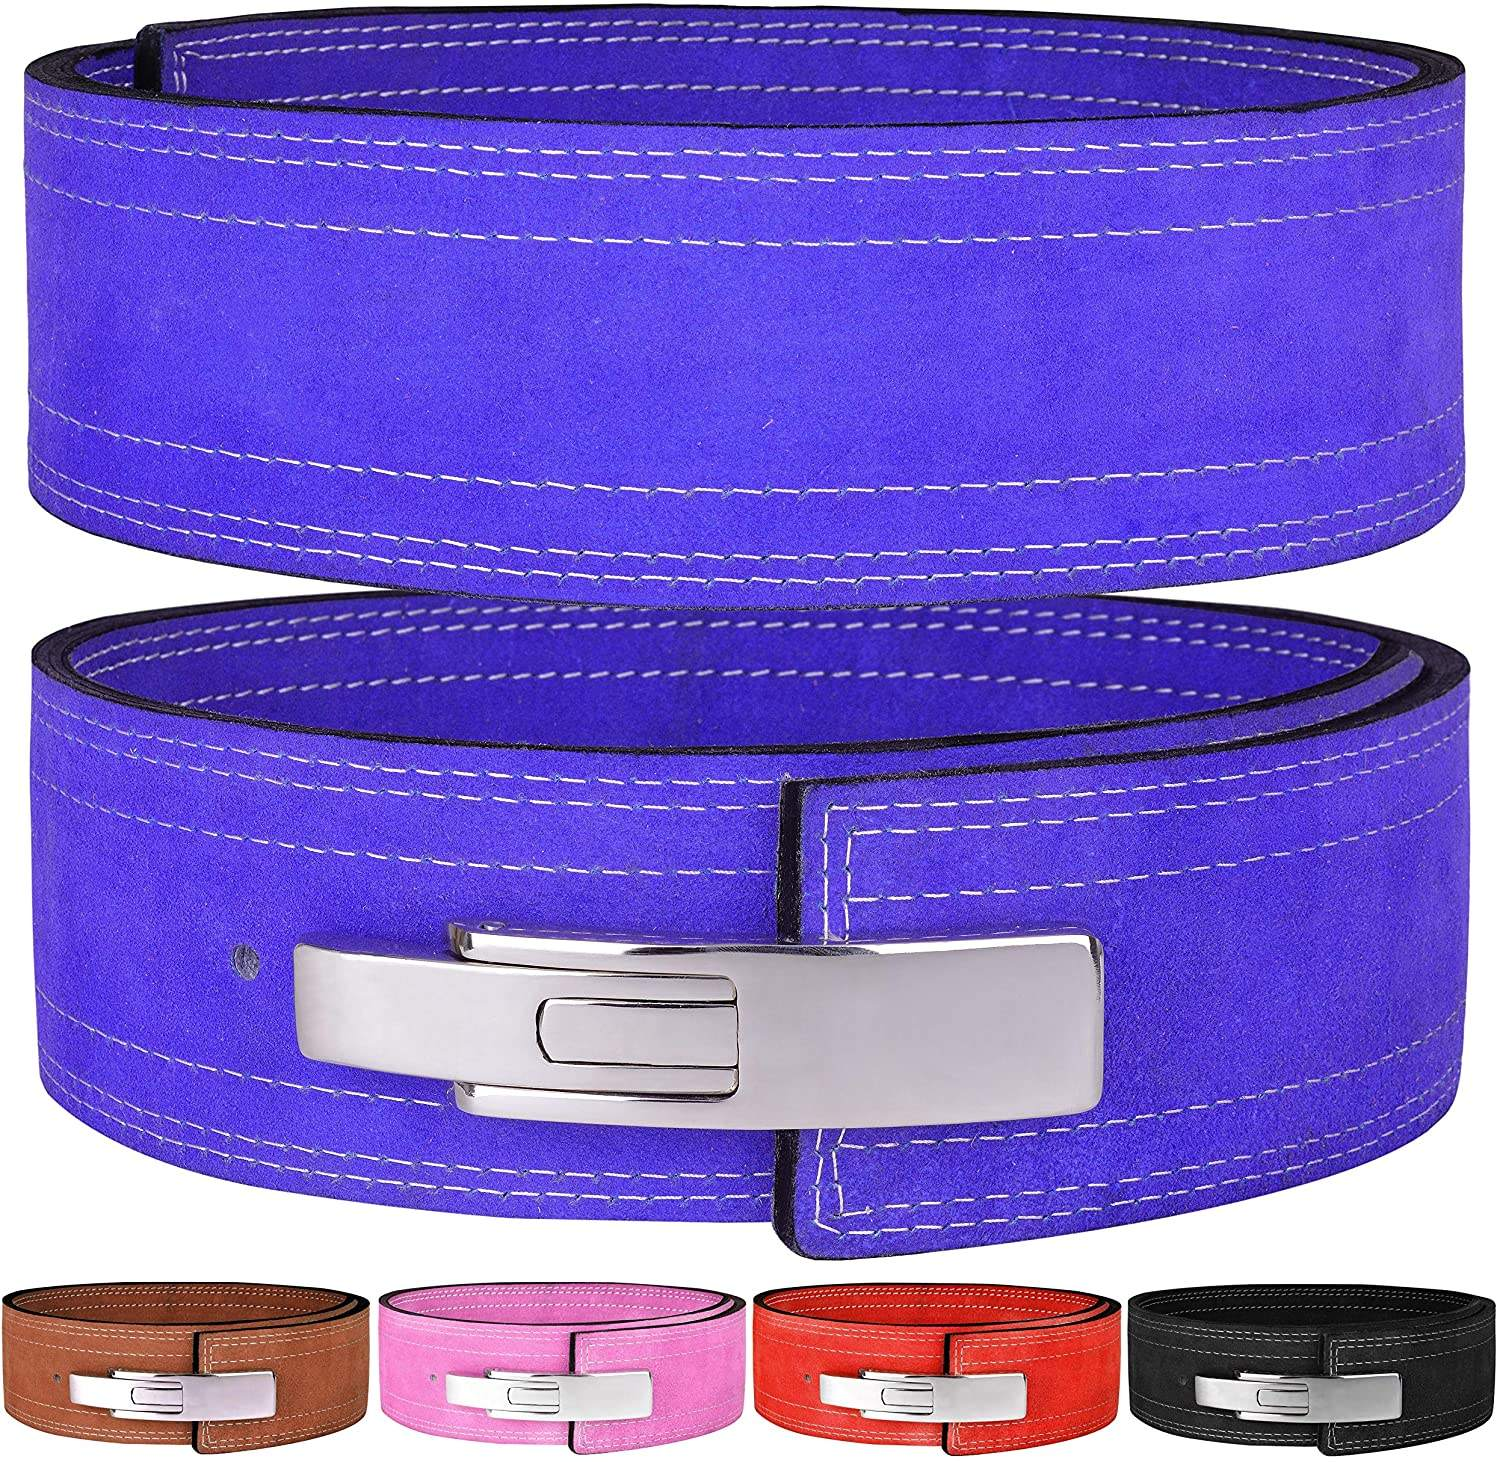 KUER Weight Lifting Belt Premium Weightlifting Belt für Serious Functional Fitness, Concise Style Lifting Belt für Men und Women